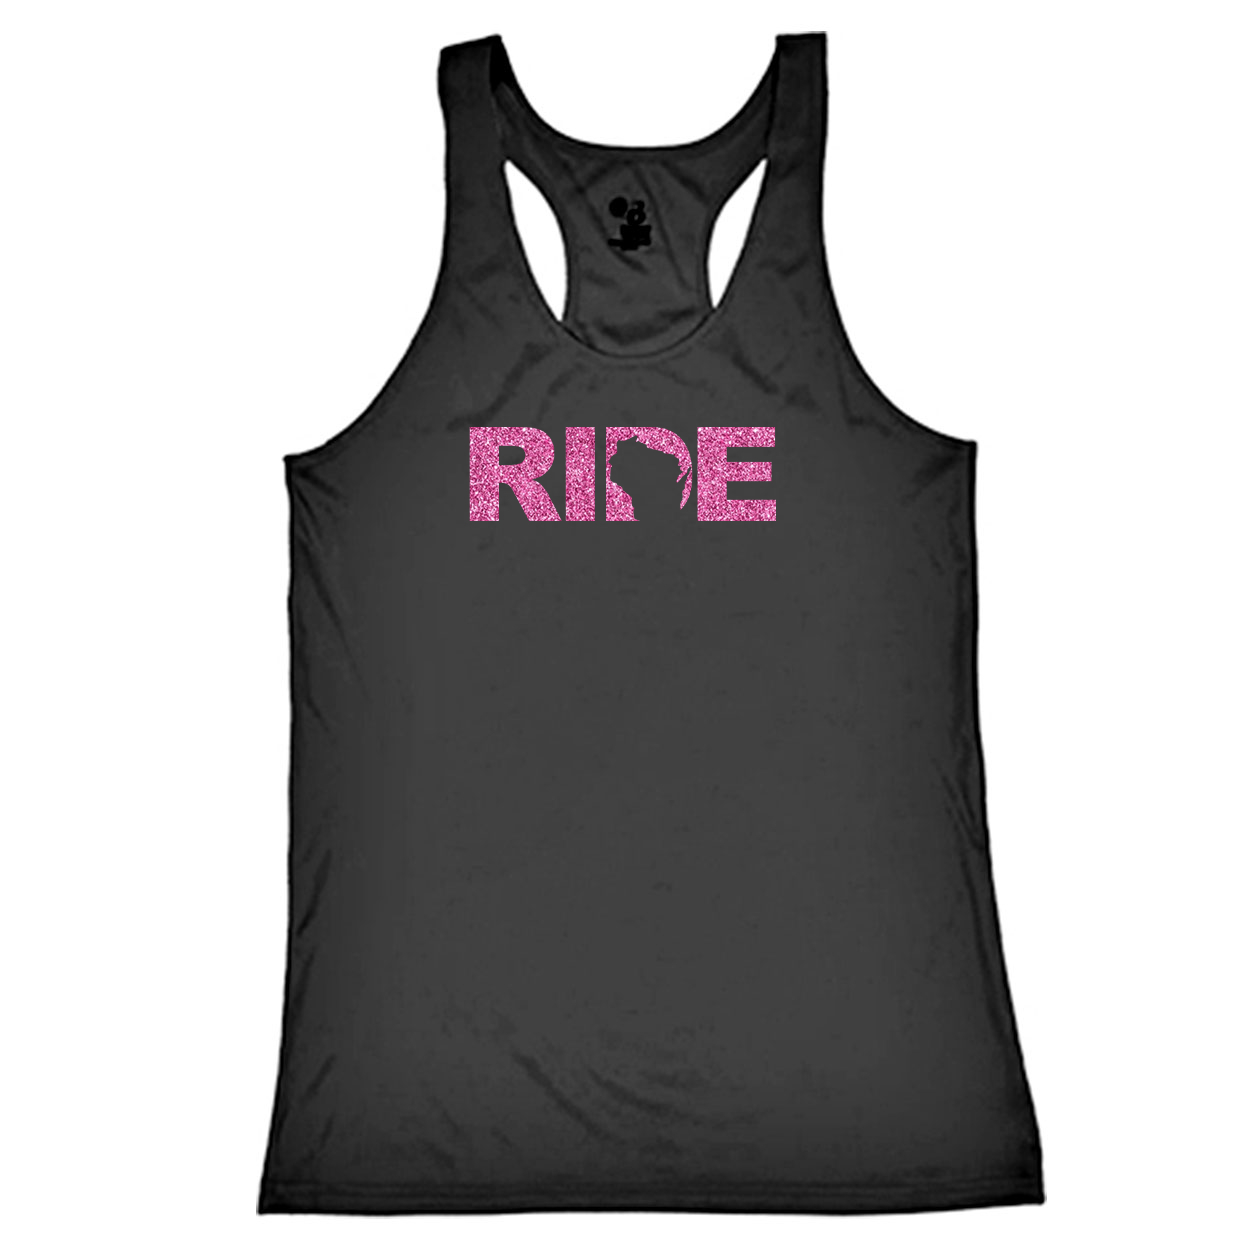 Ride Wisconsin Classic Youth Girls Performance Racerback Tank Top Black (Glitter Pink Logo)